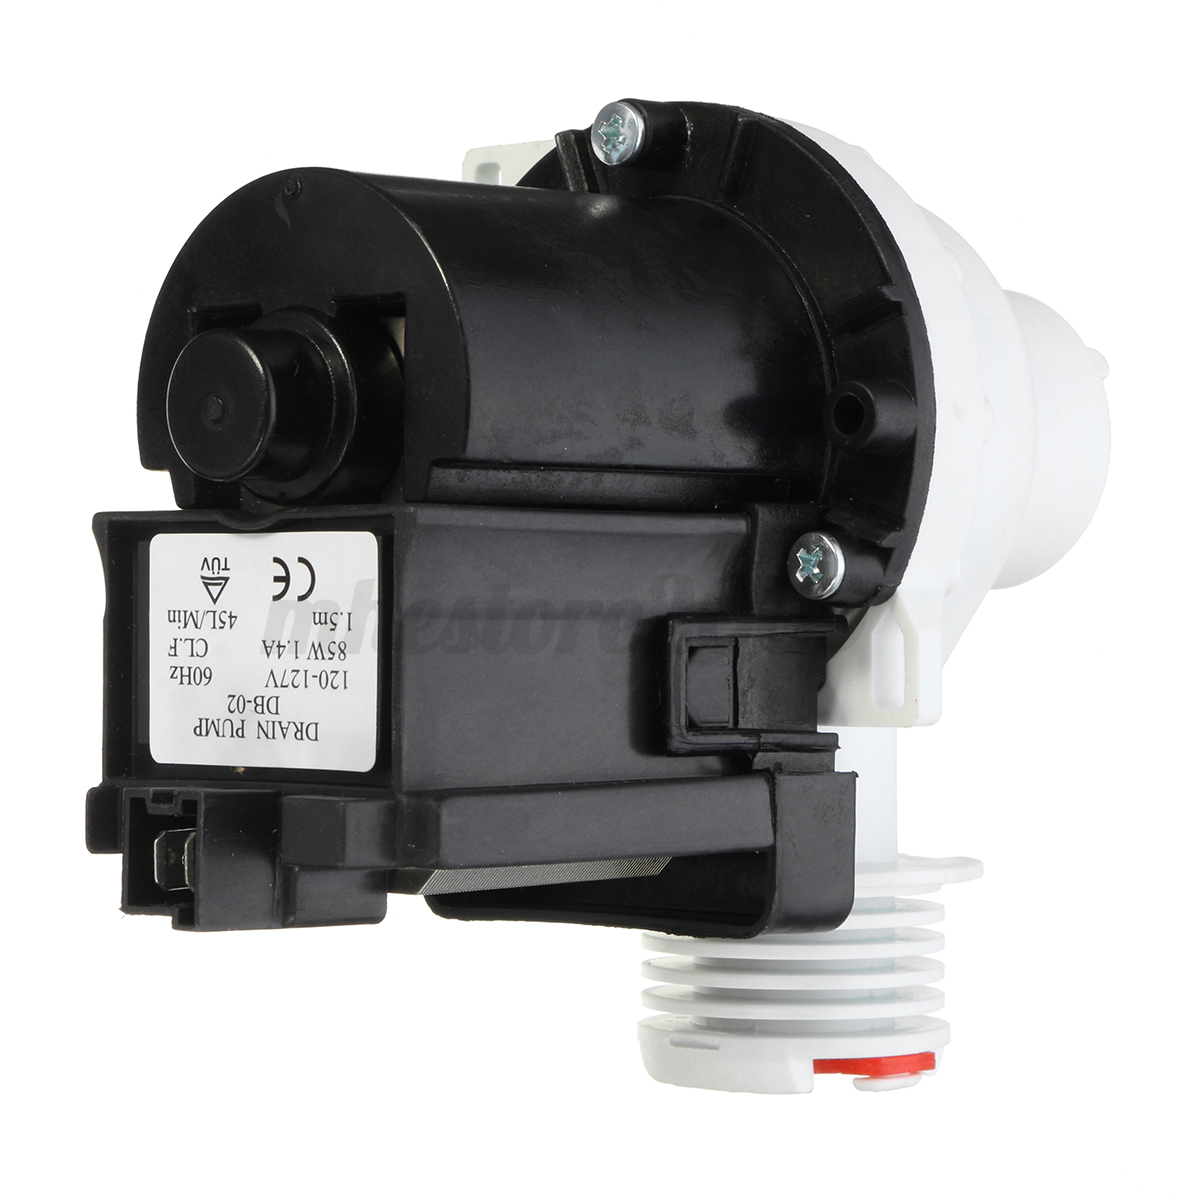 Replacement washer drain water pump motor 137108100 for for How to test a washer drain pump motor